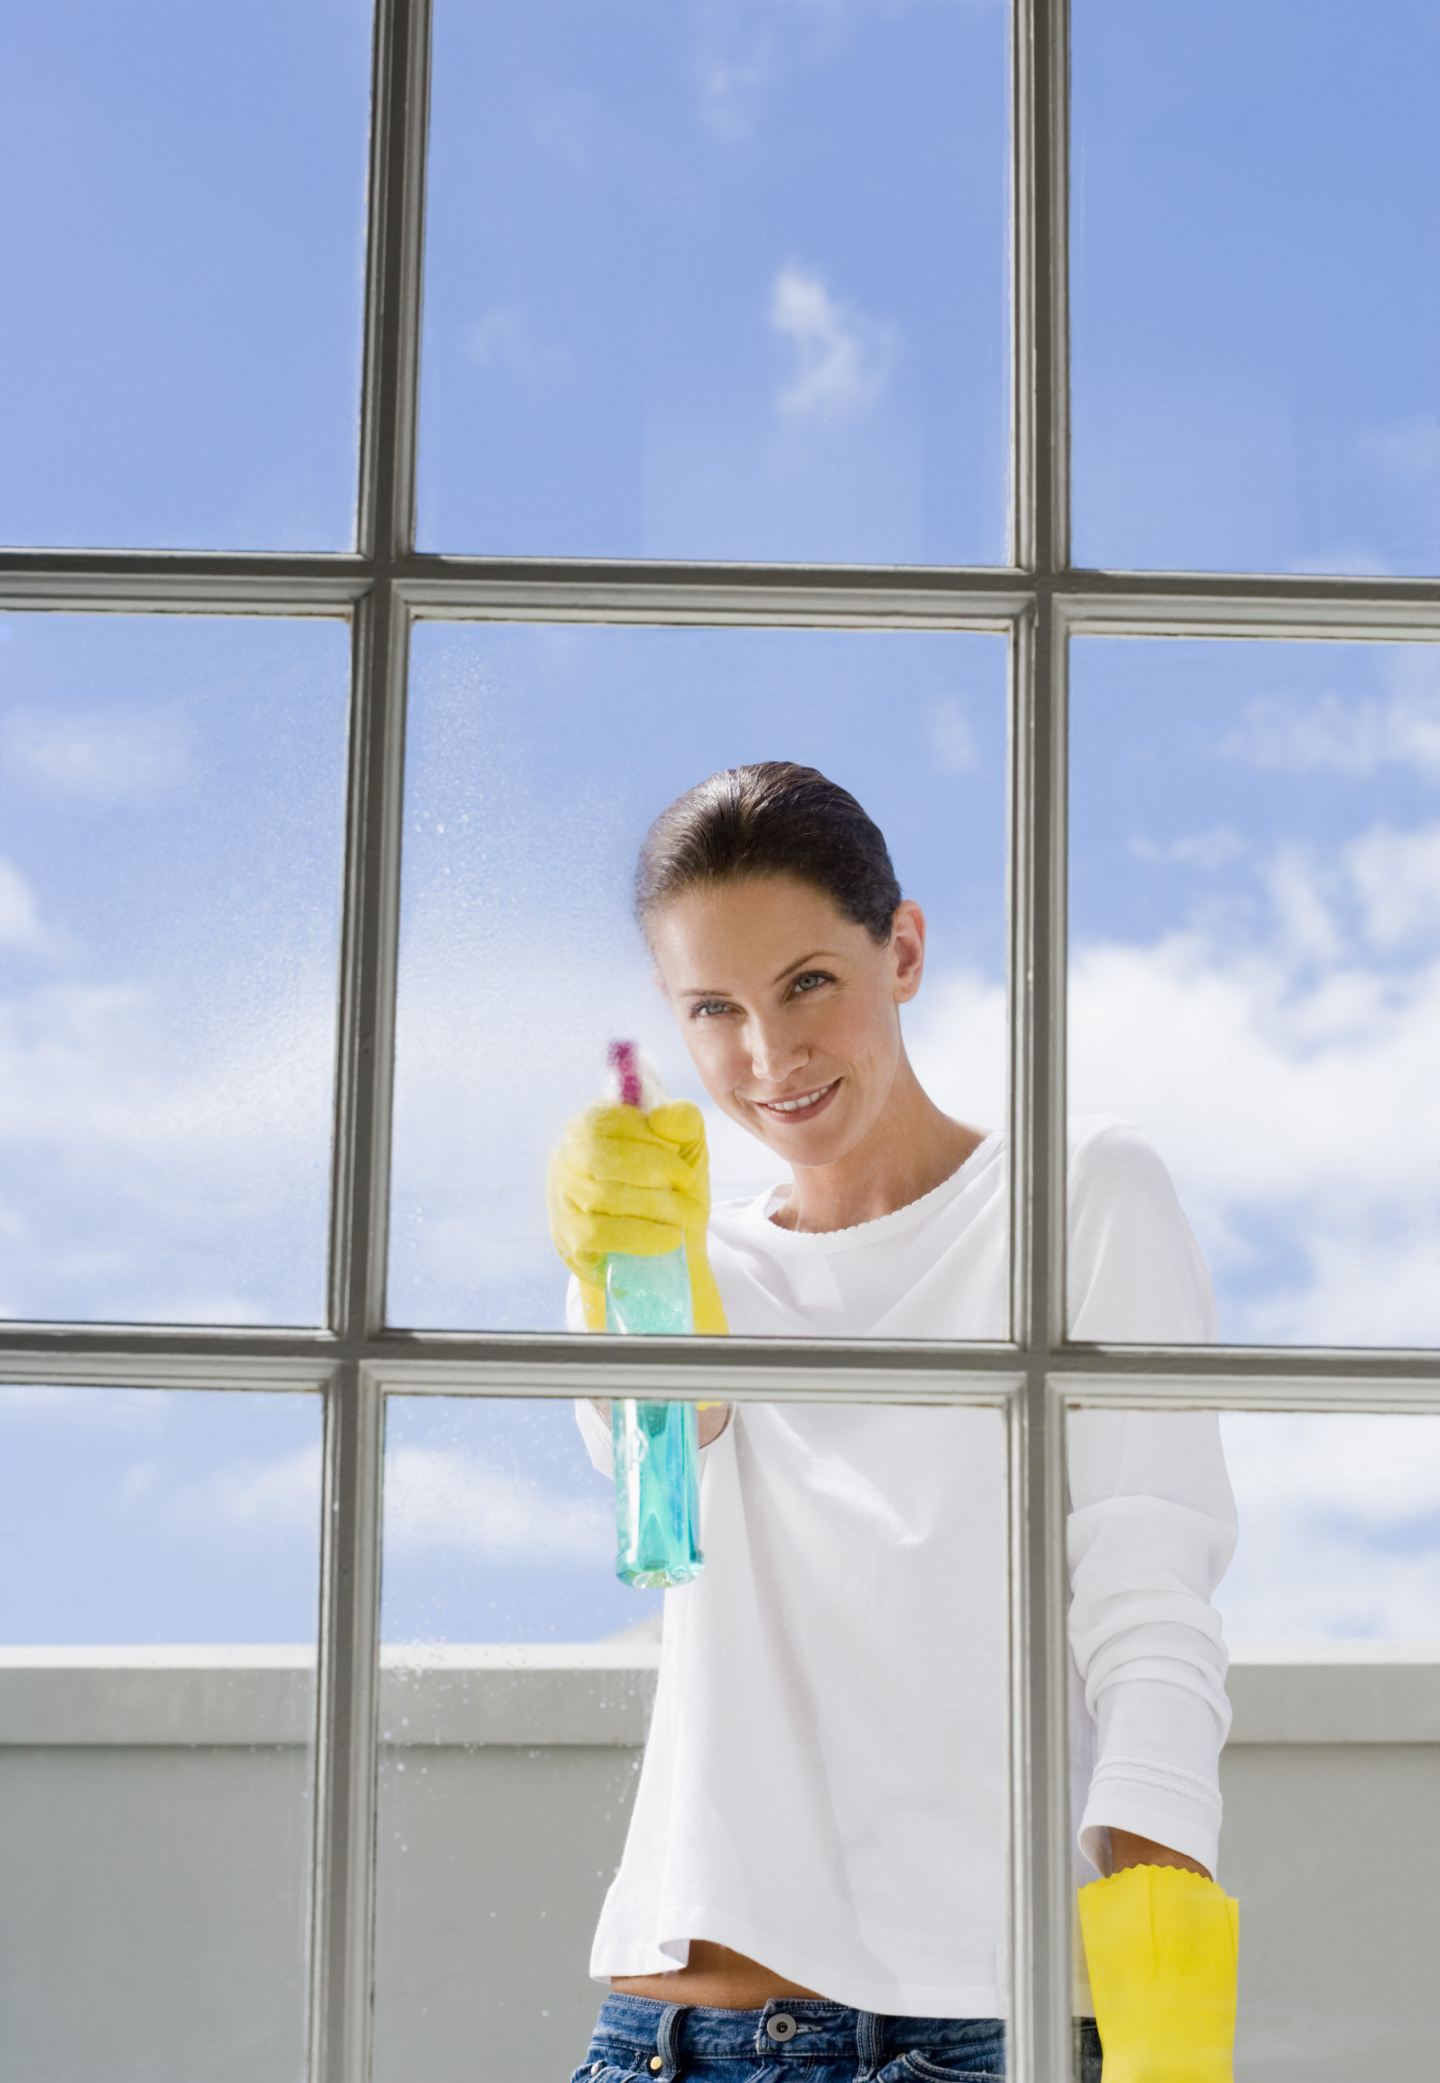 Window Cleaning Services : Choose the right window cleaning service